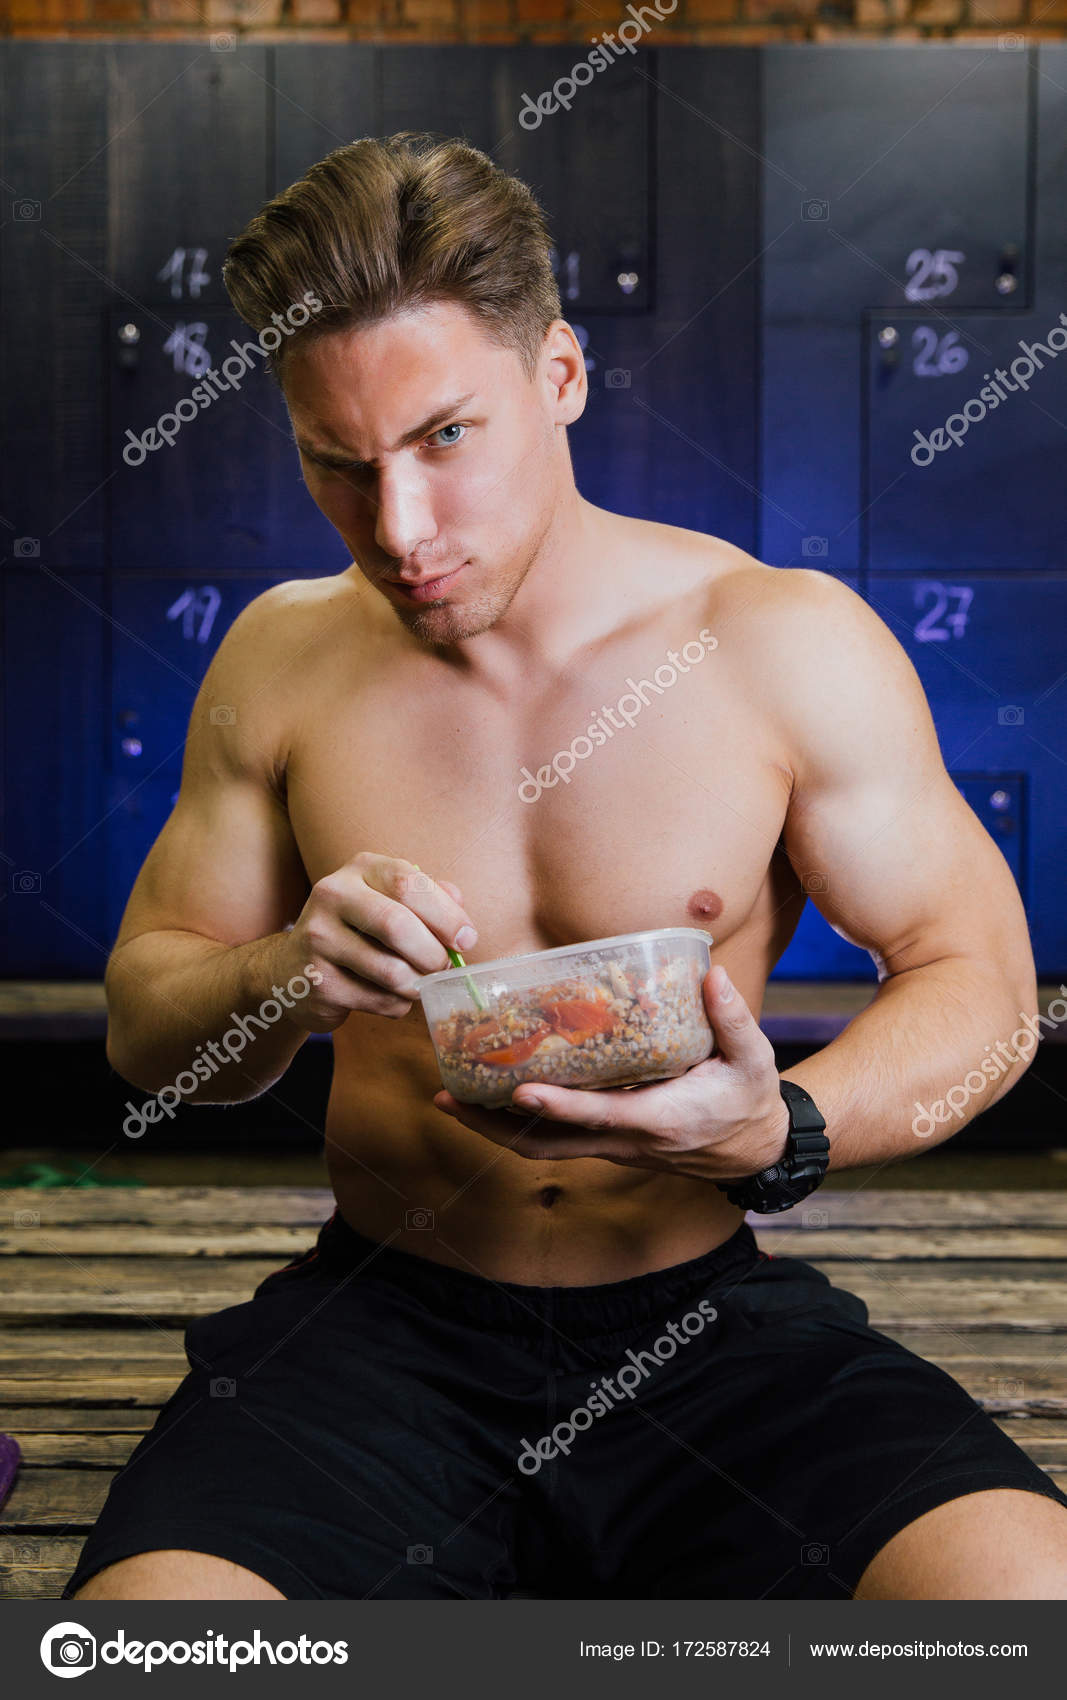 Fitness model of a bodybuilder guy eating food from a plastic ...